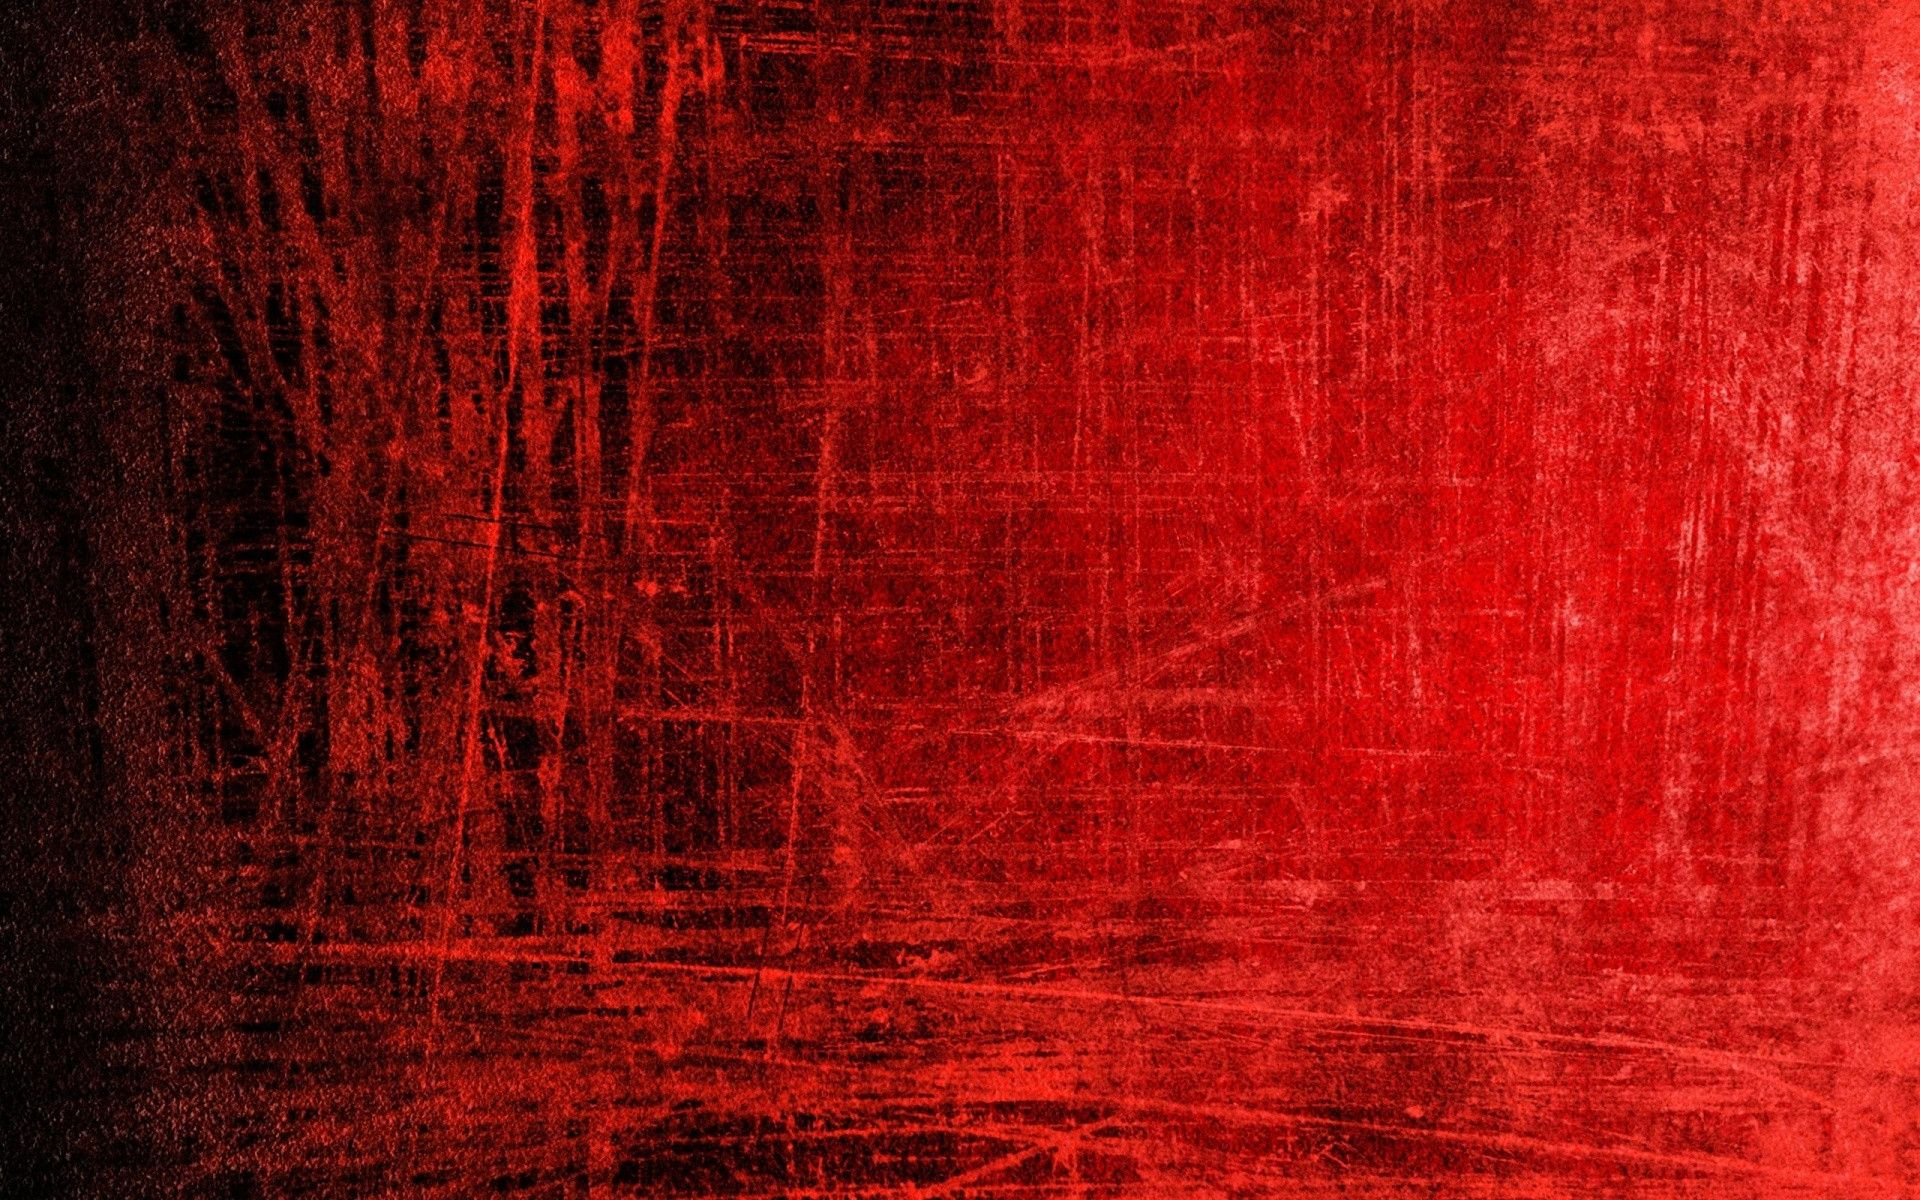 Red Design Backgrounds By Jagna Mcmenamin On